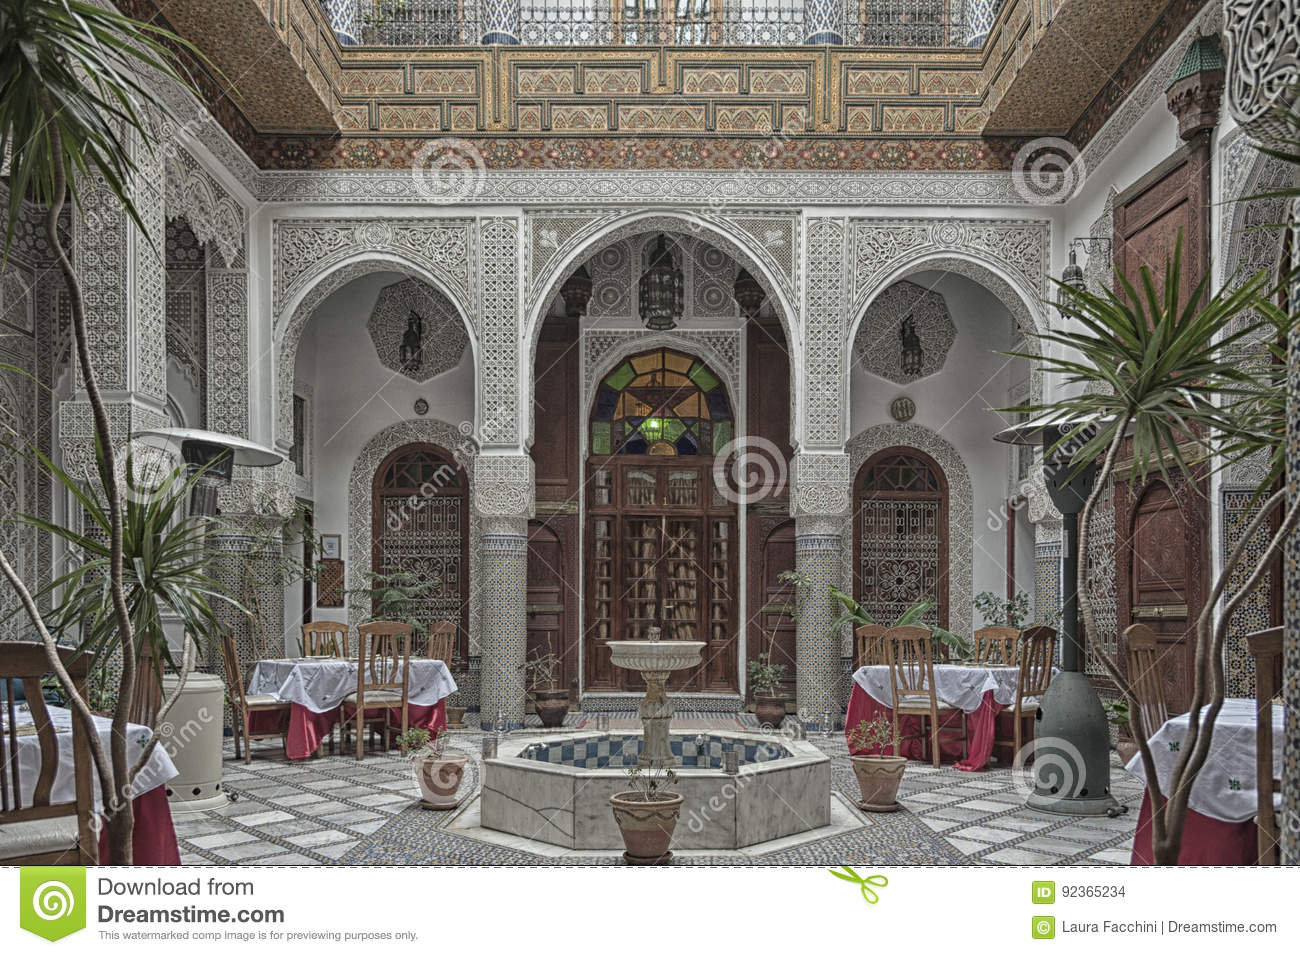 fez morocco february interior of a riad small family owned hotel in the medina of fes